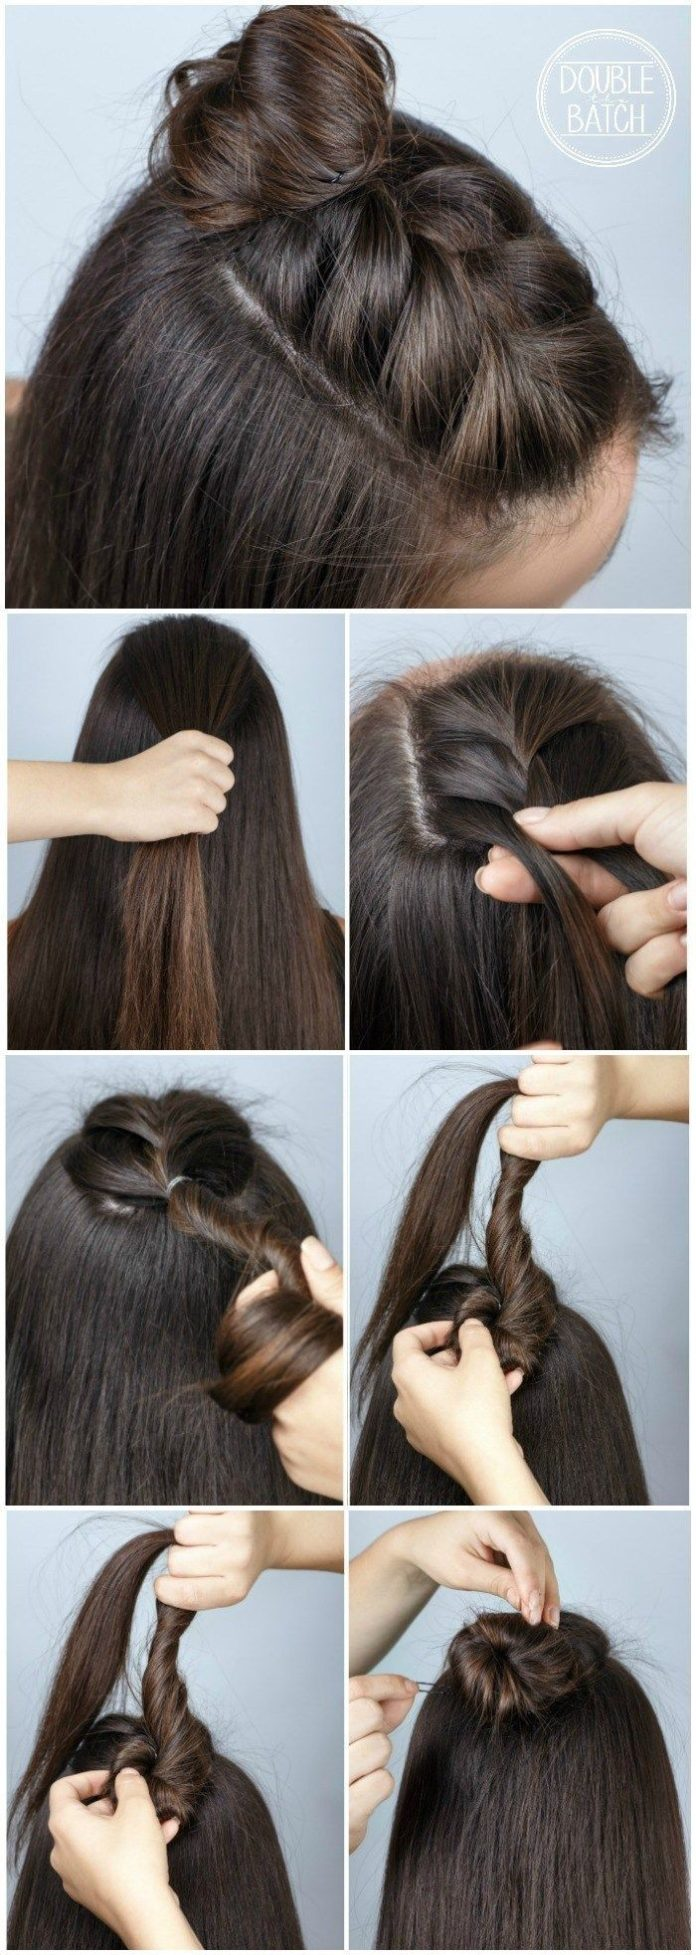 Easy Hair Ideas For School Braid Bun Beauty Haircut